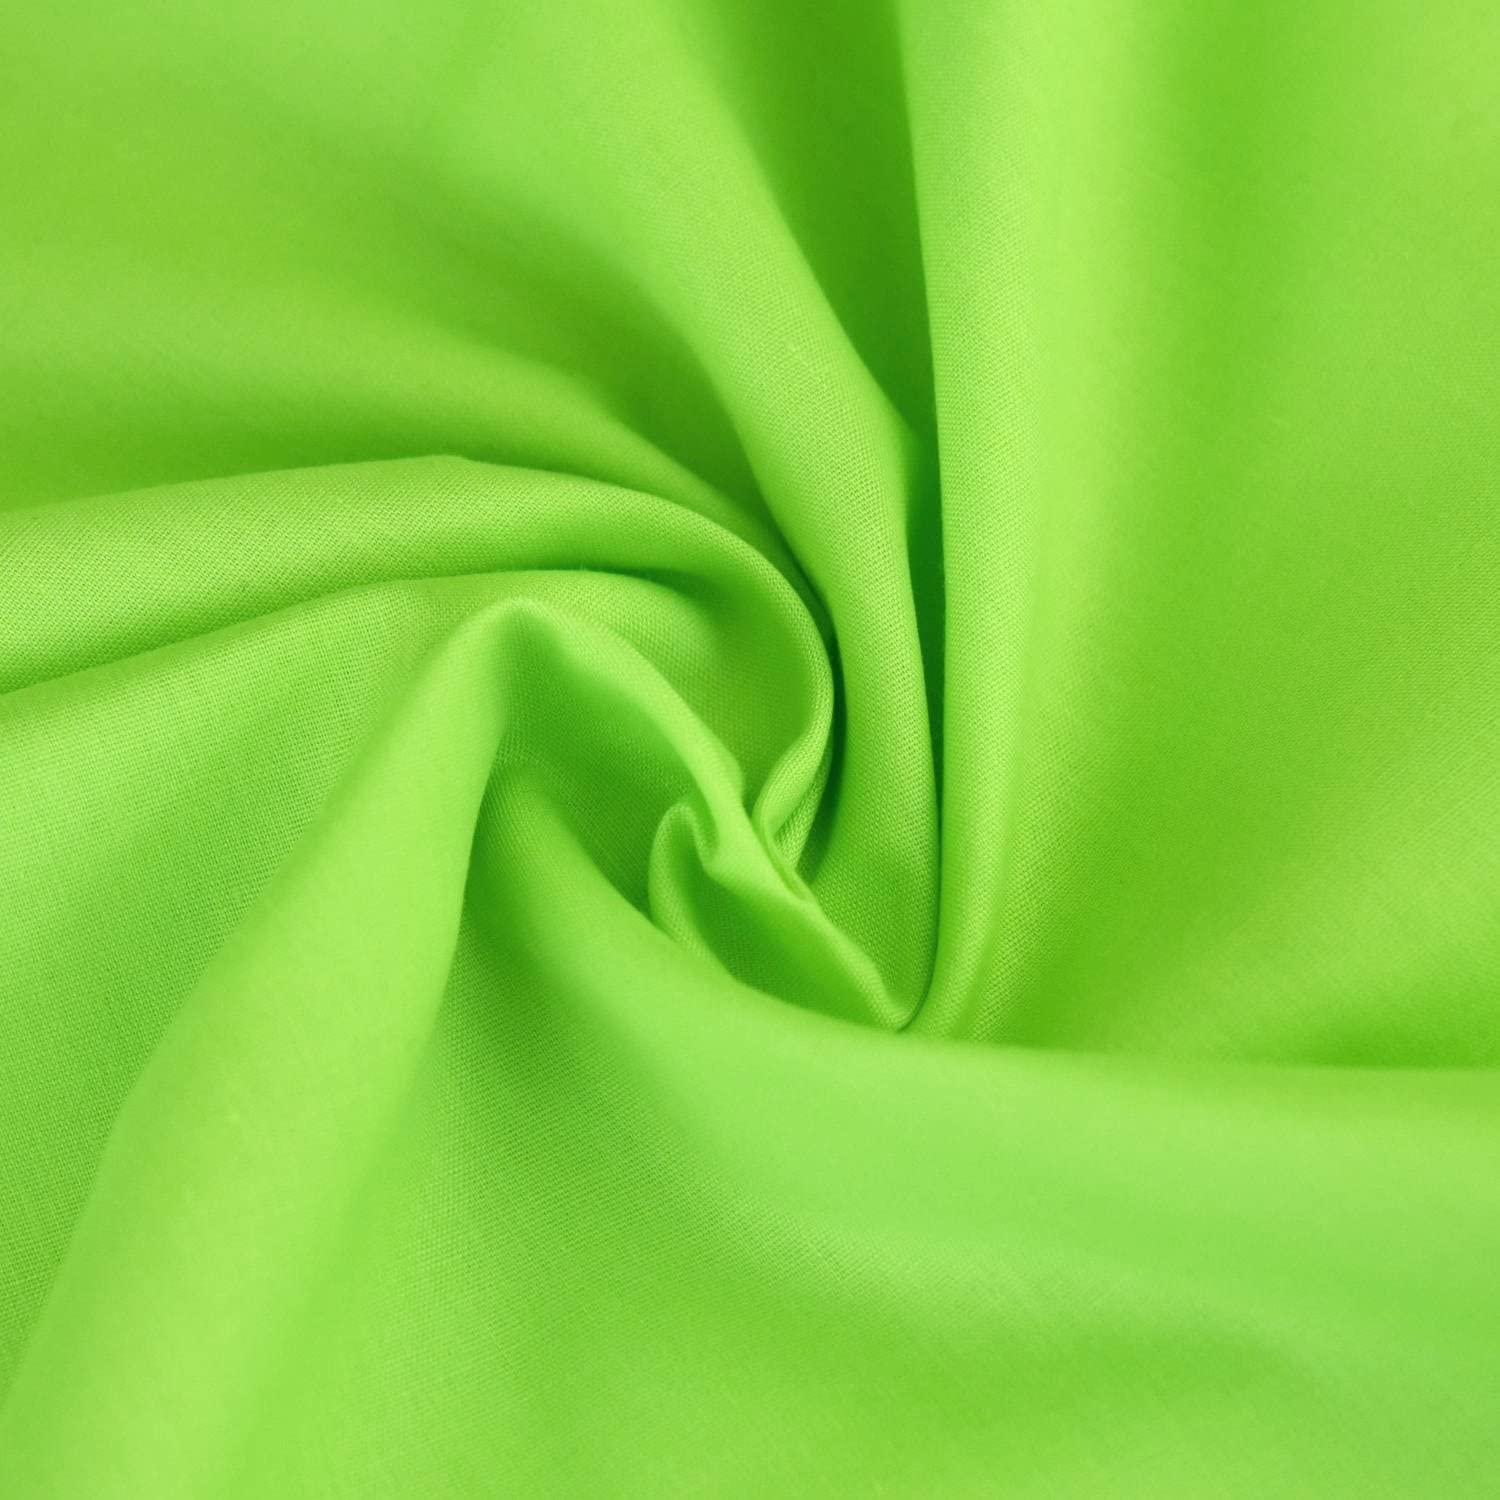 Plain Polycotton Fabric Material Poly Cotton Dress Craft Material 45-112 cm Wide 60 Colours Hot Pink, Metre